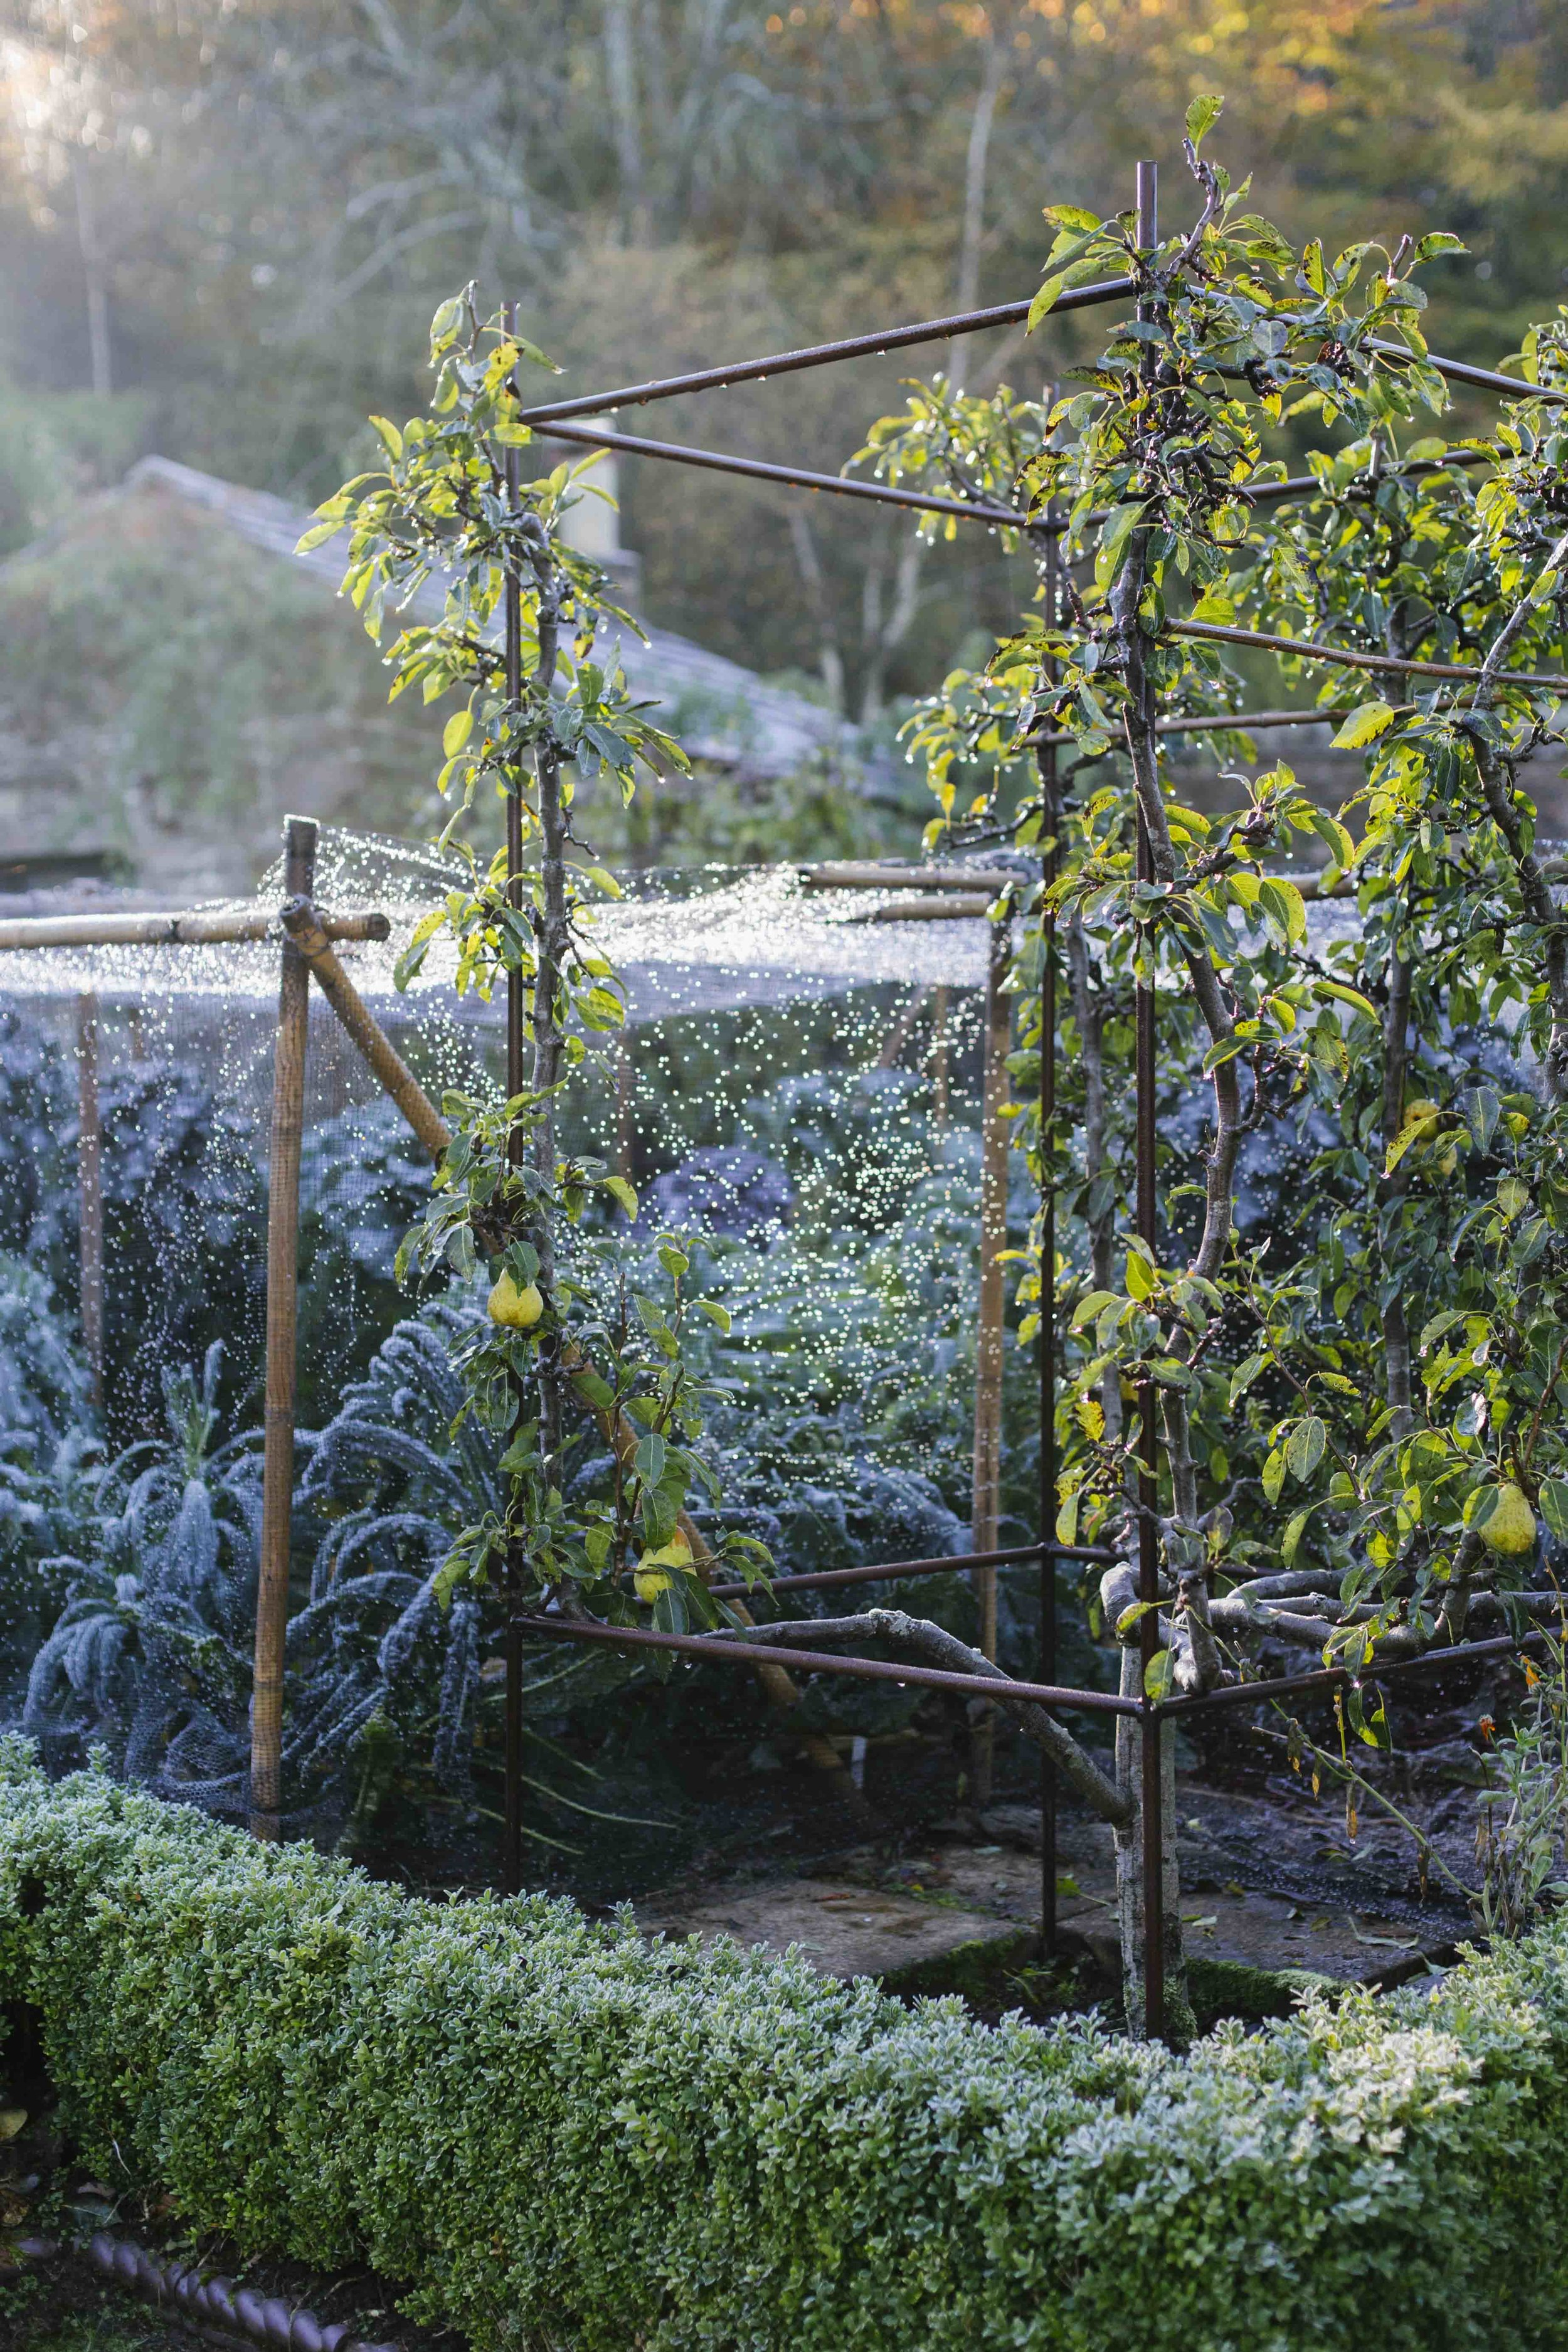 Gresgarth_Autumn_18_18.JPG